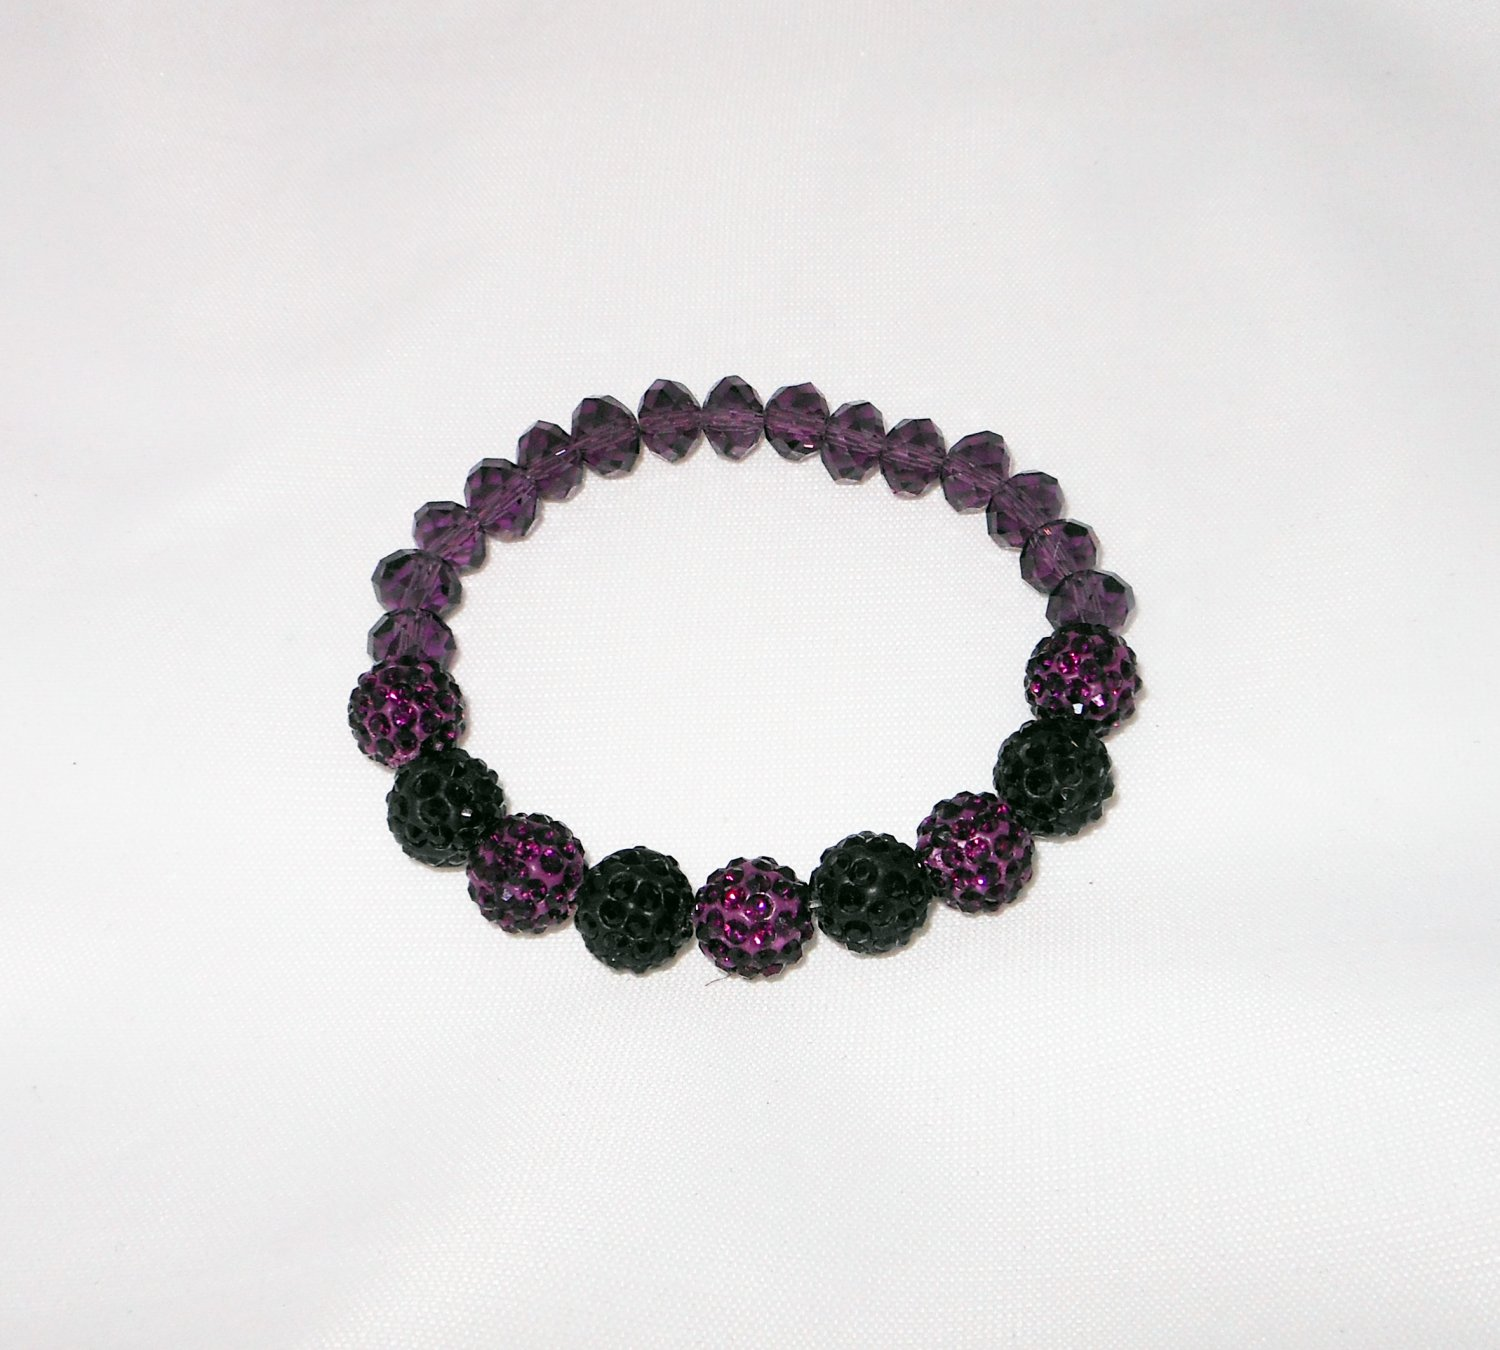 Purple and Black Crystal Stretchy Shamballa Bracelet with crystal strap